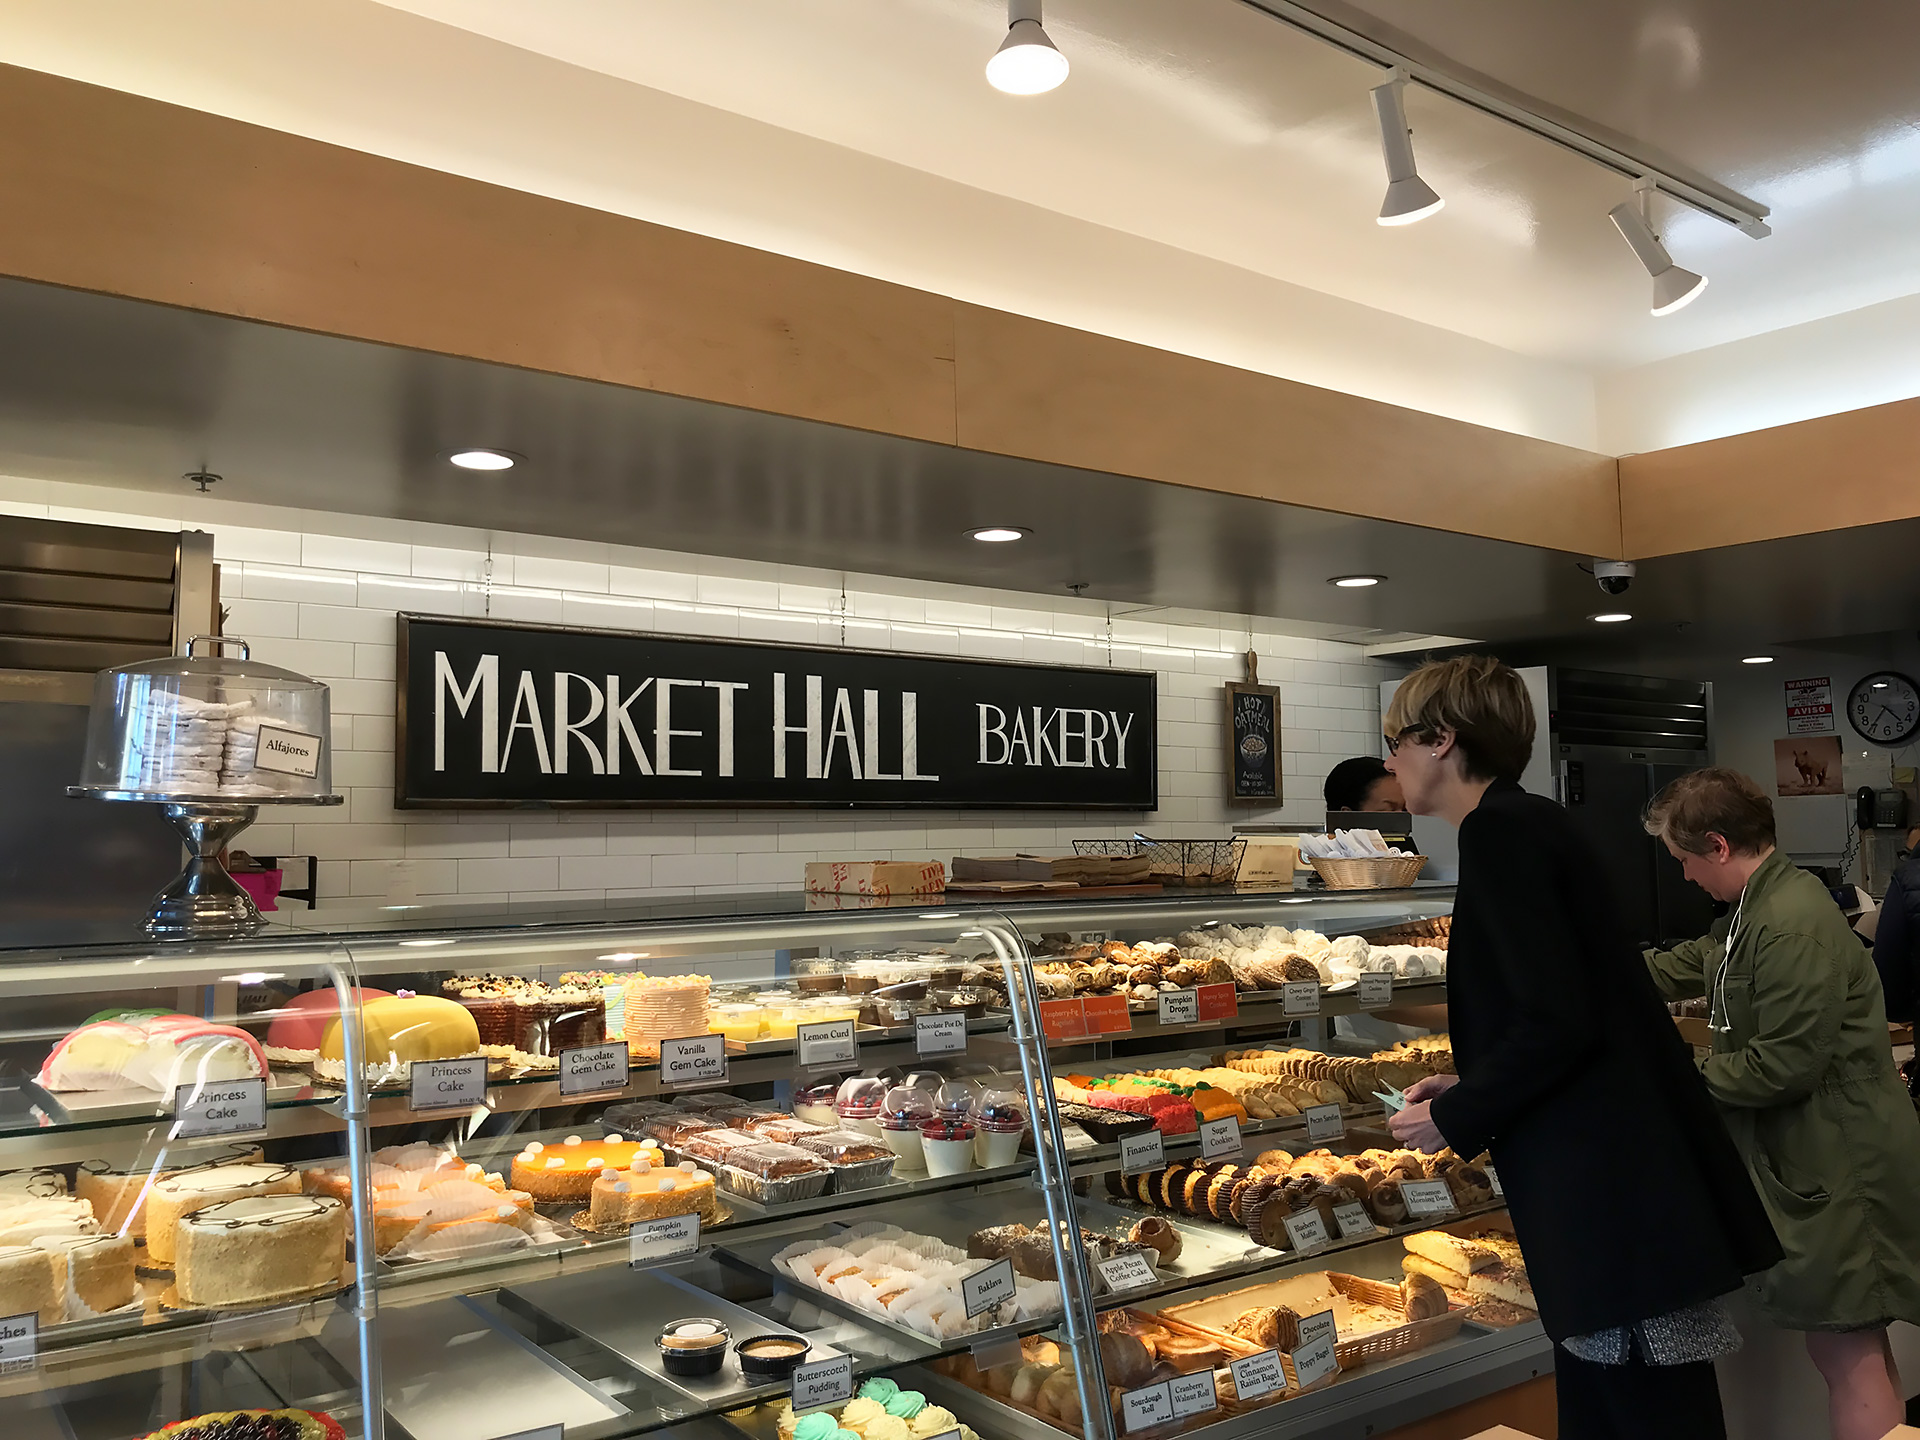 The always-hopping Market Hall Bakery.